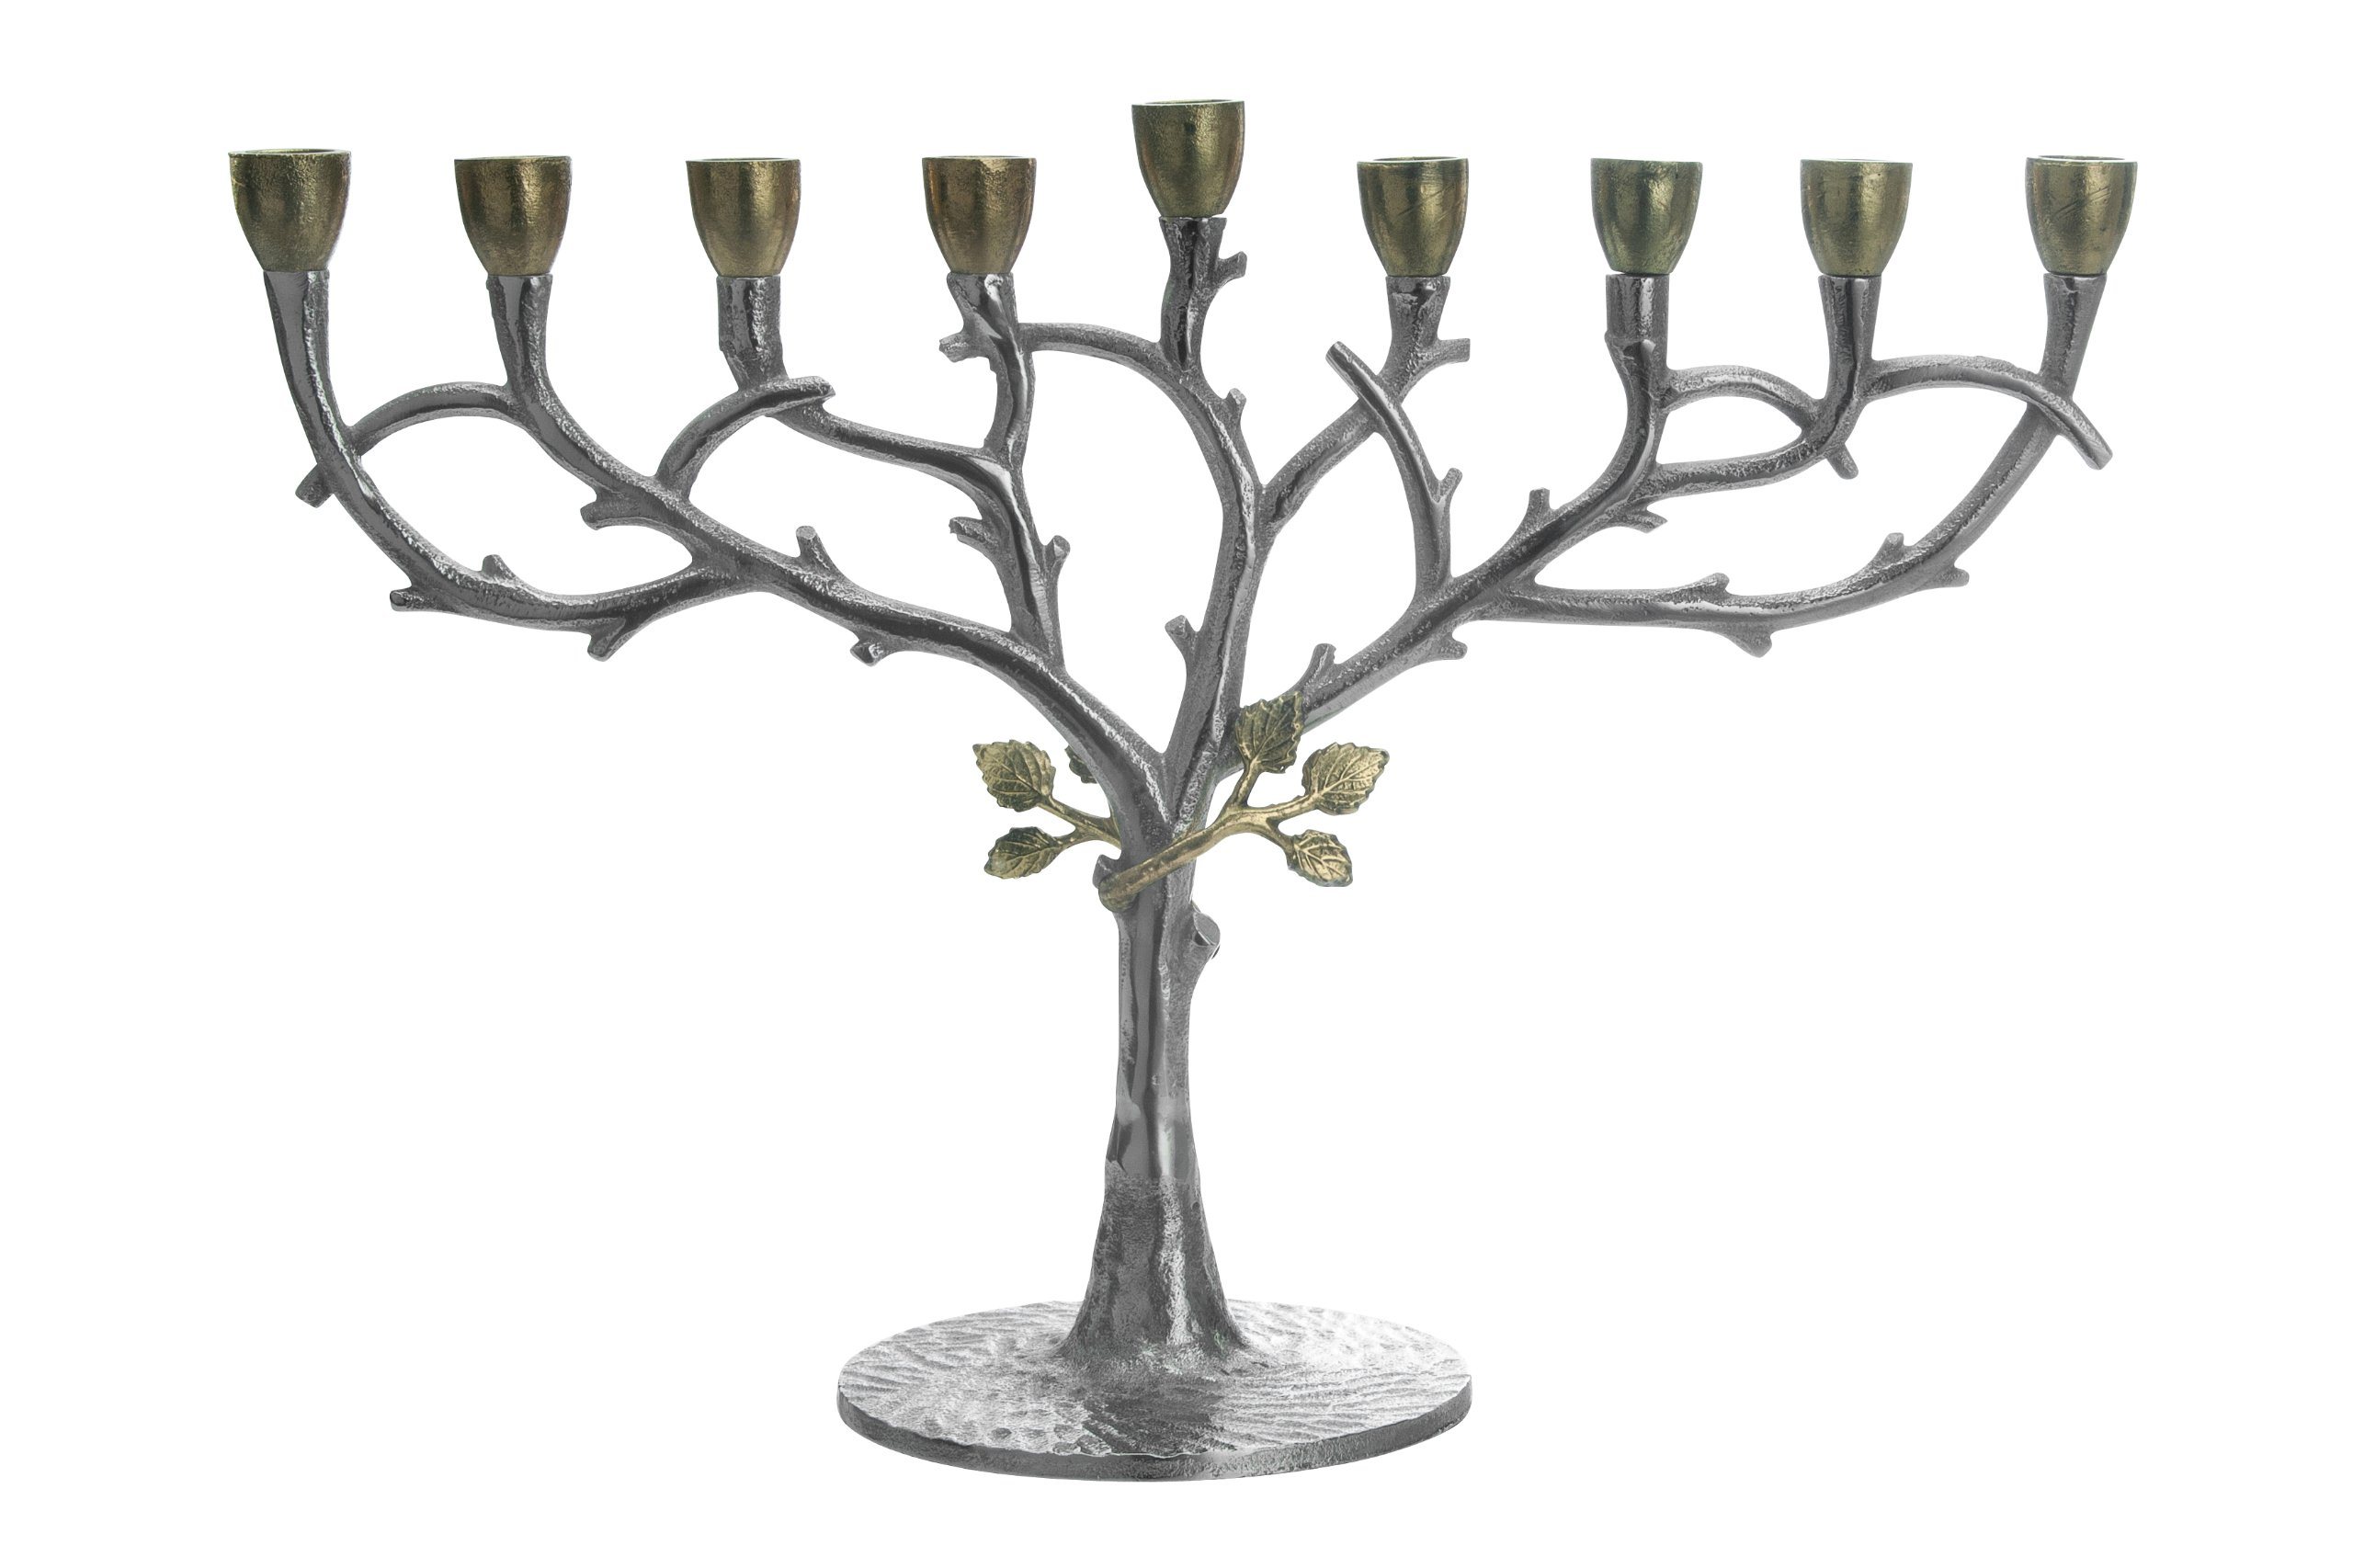 Classic Touch MIM25 Hammered Stainless Steel Oil Menorah by Classic Touch Inc.